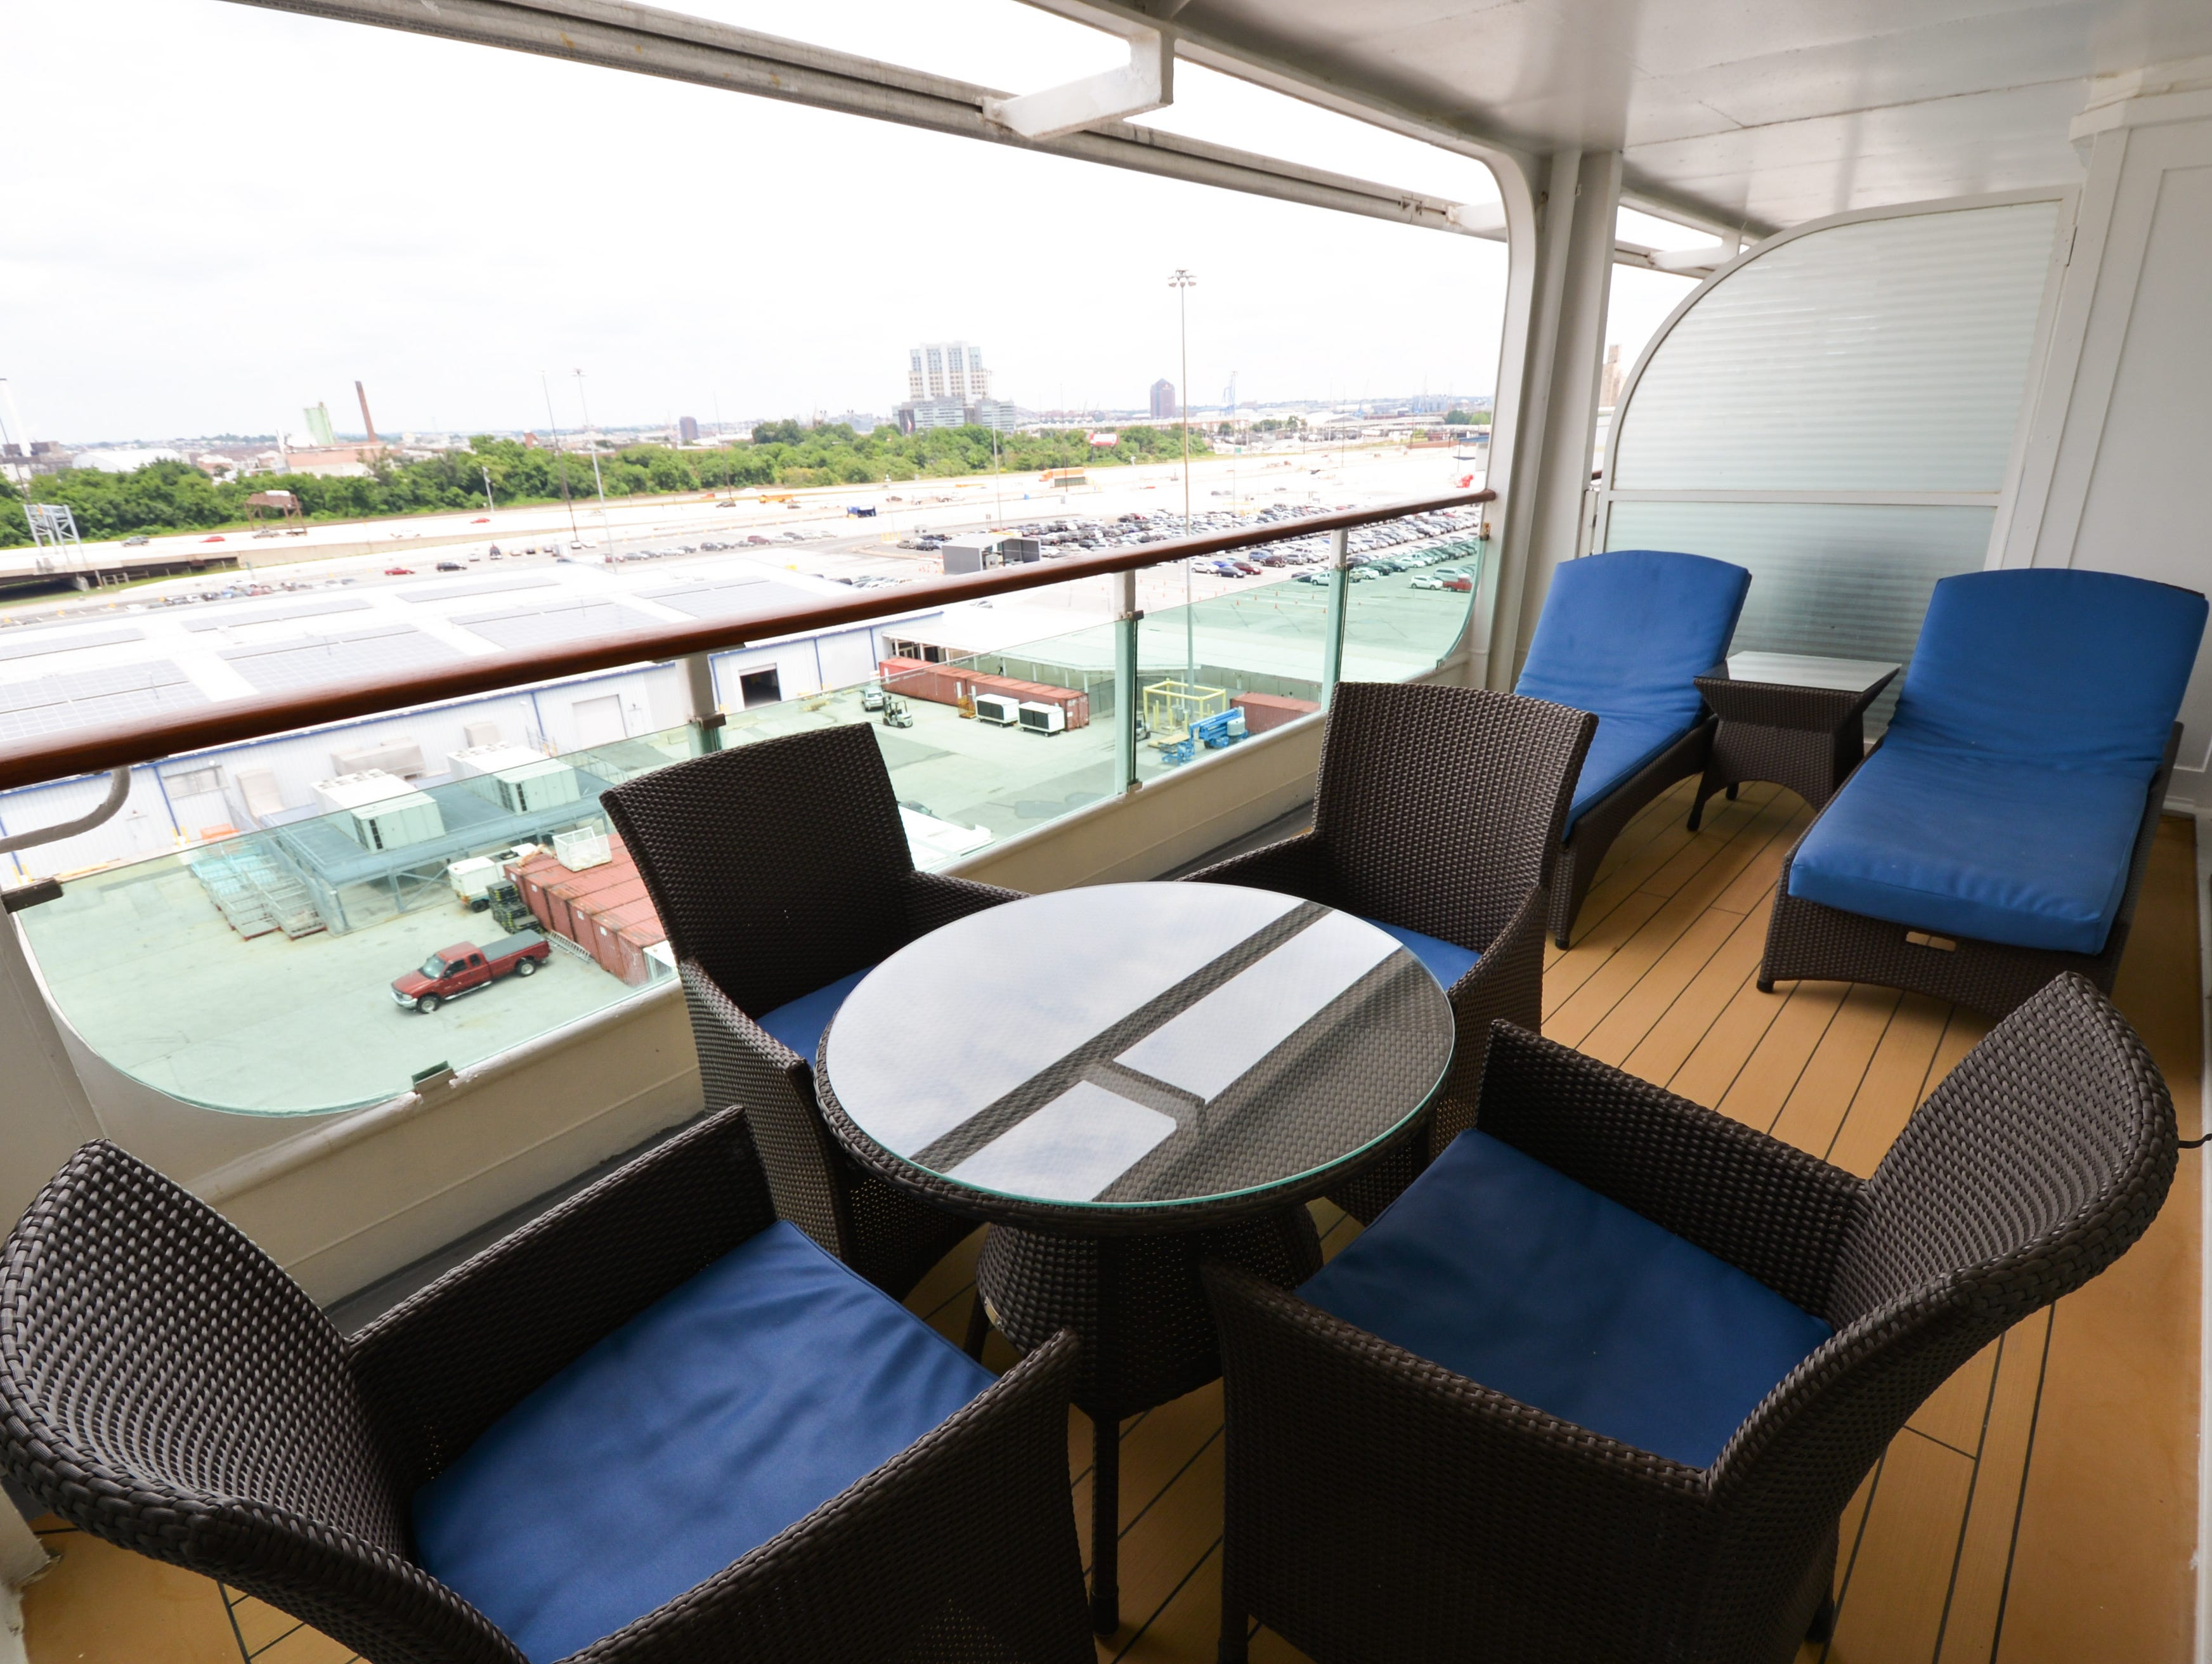 The Royal Suite's 161-square-foot balcony has room for a table and four chairs, and two plush lounge chairs.